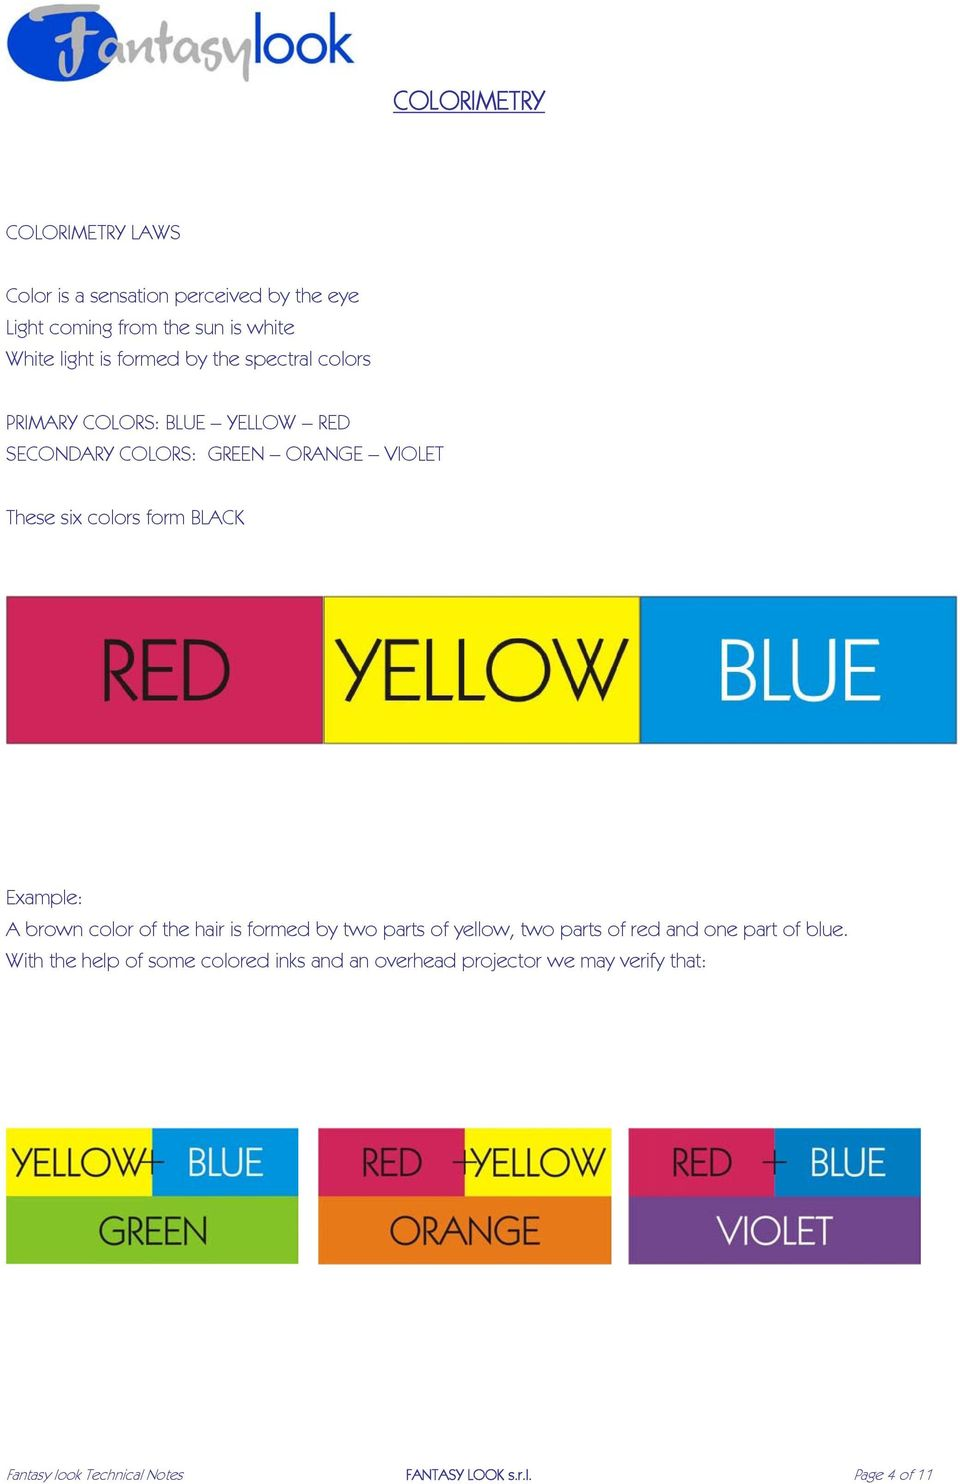 BLACK Example: A brown color of the hair is formed by two parts of yellow, two parts of red and one part of blue.